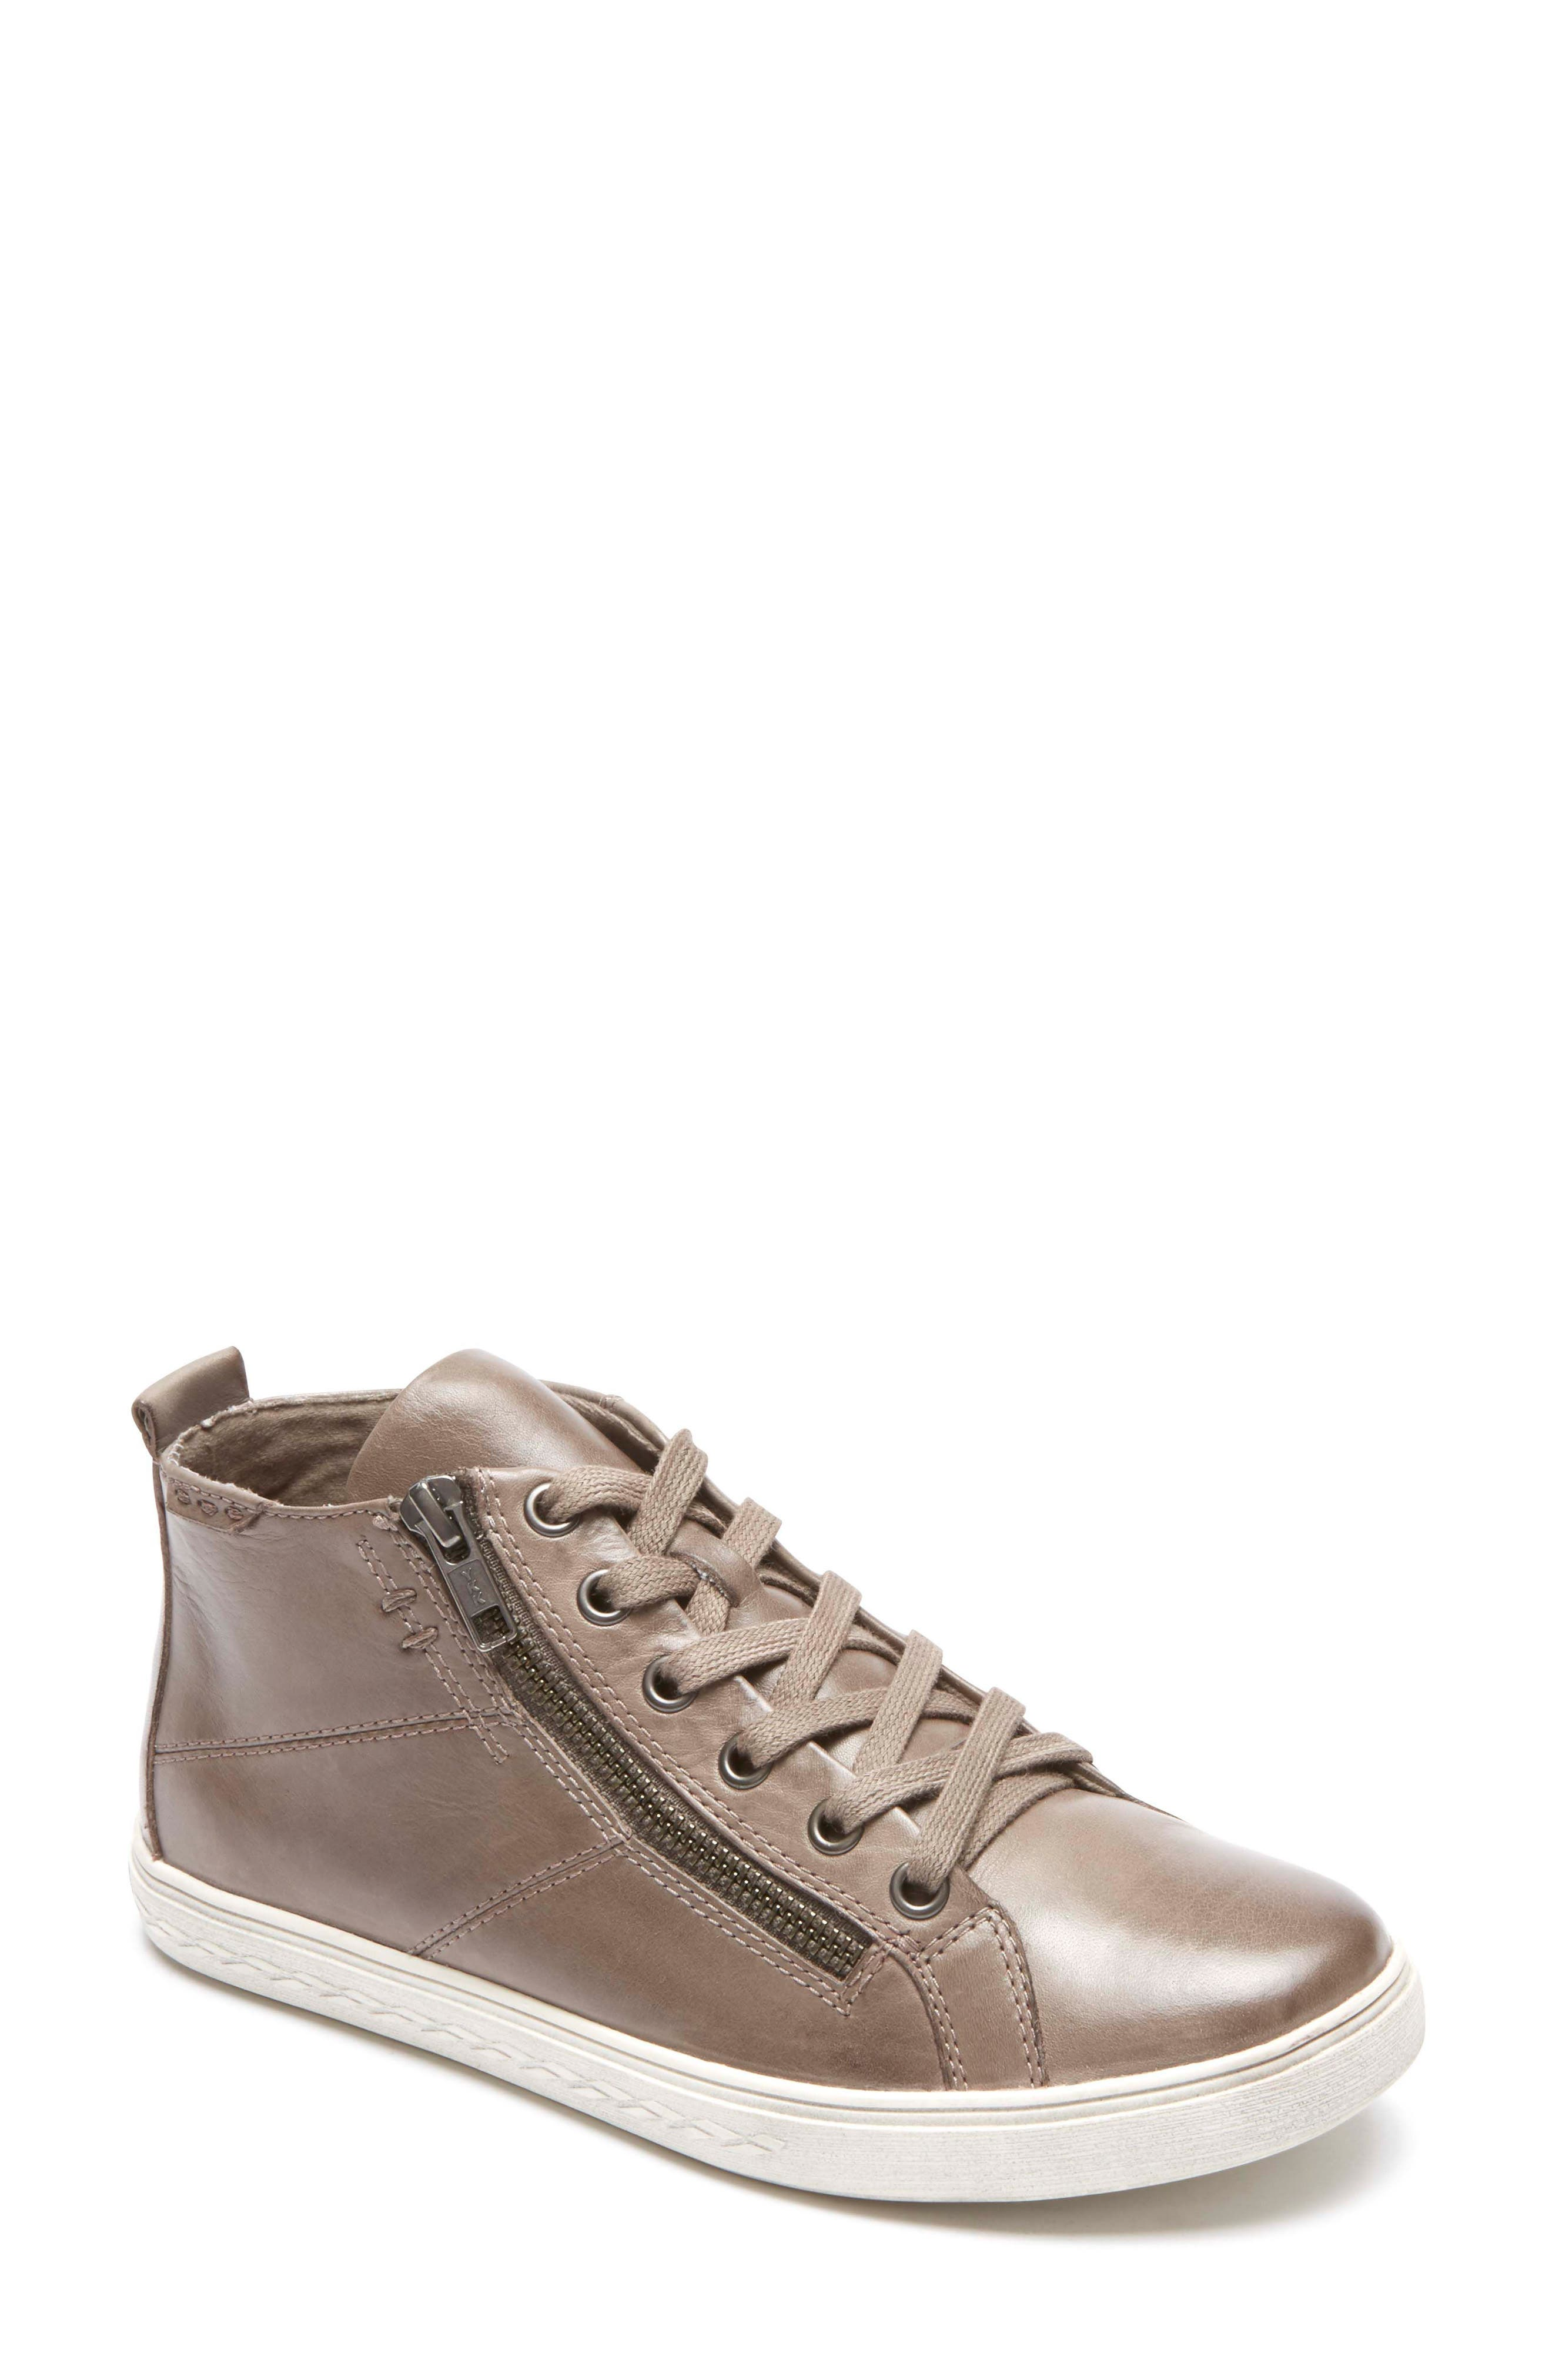 Rockport Cobb Hill Willa High Top Sneaker (Women)